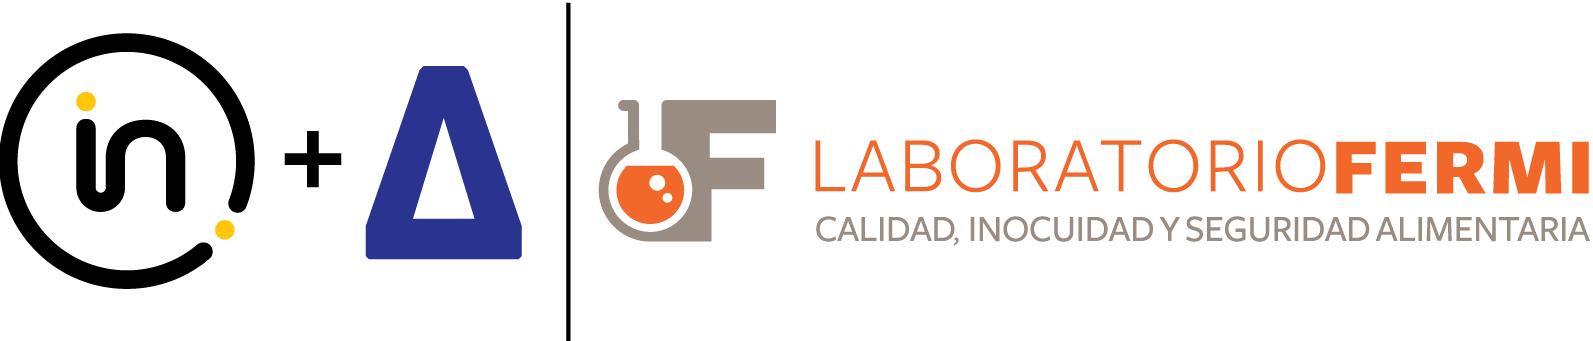 Laboratorio Fermi